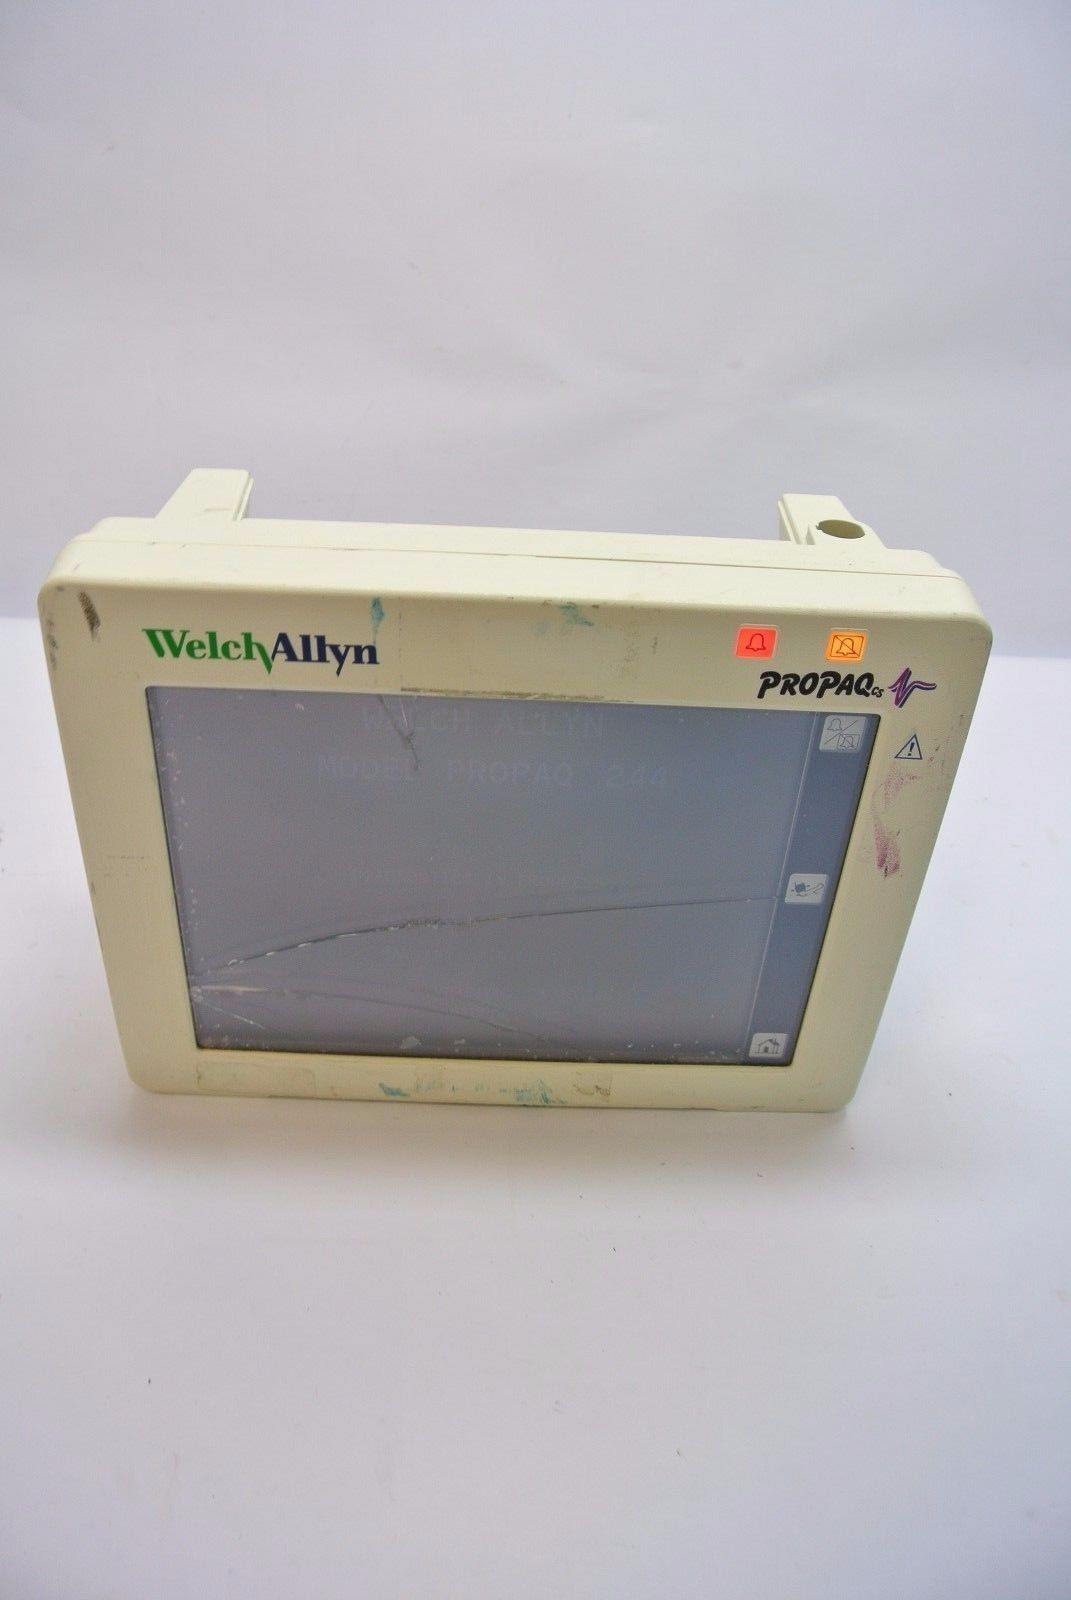 Welch Allyn ProPaq cs Patient Monitor 244 - Cracked Glass (007-0060-02)